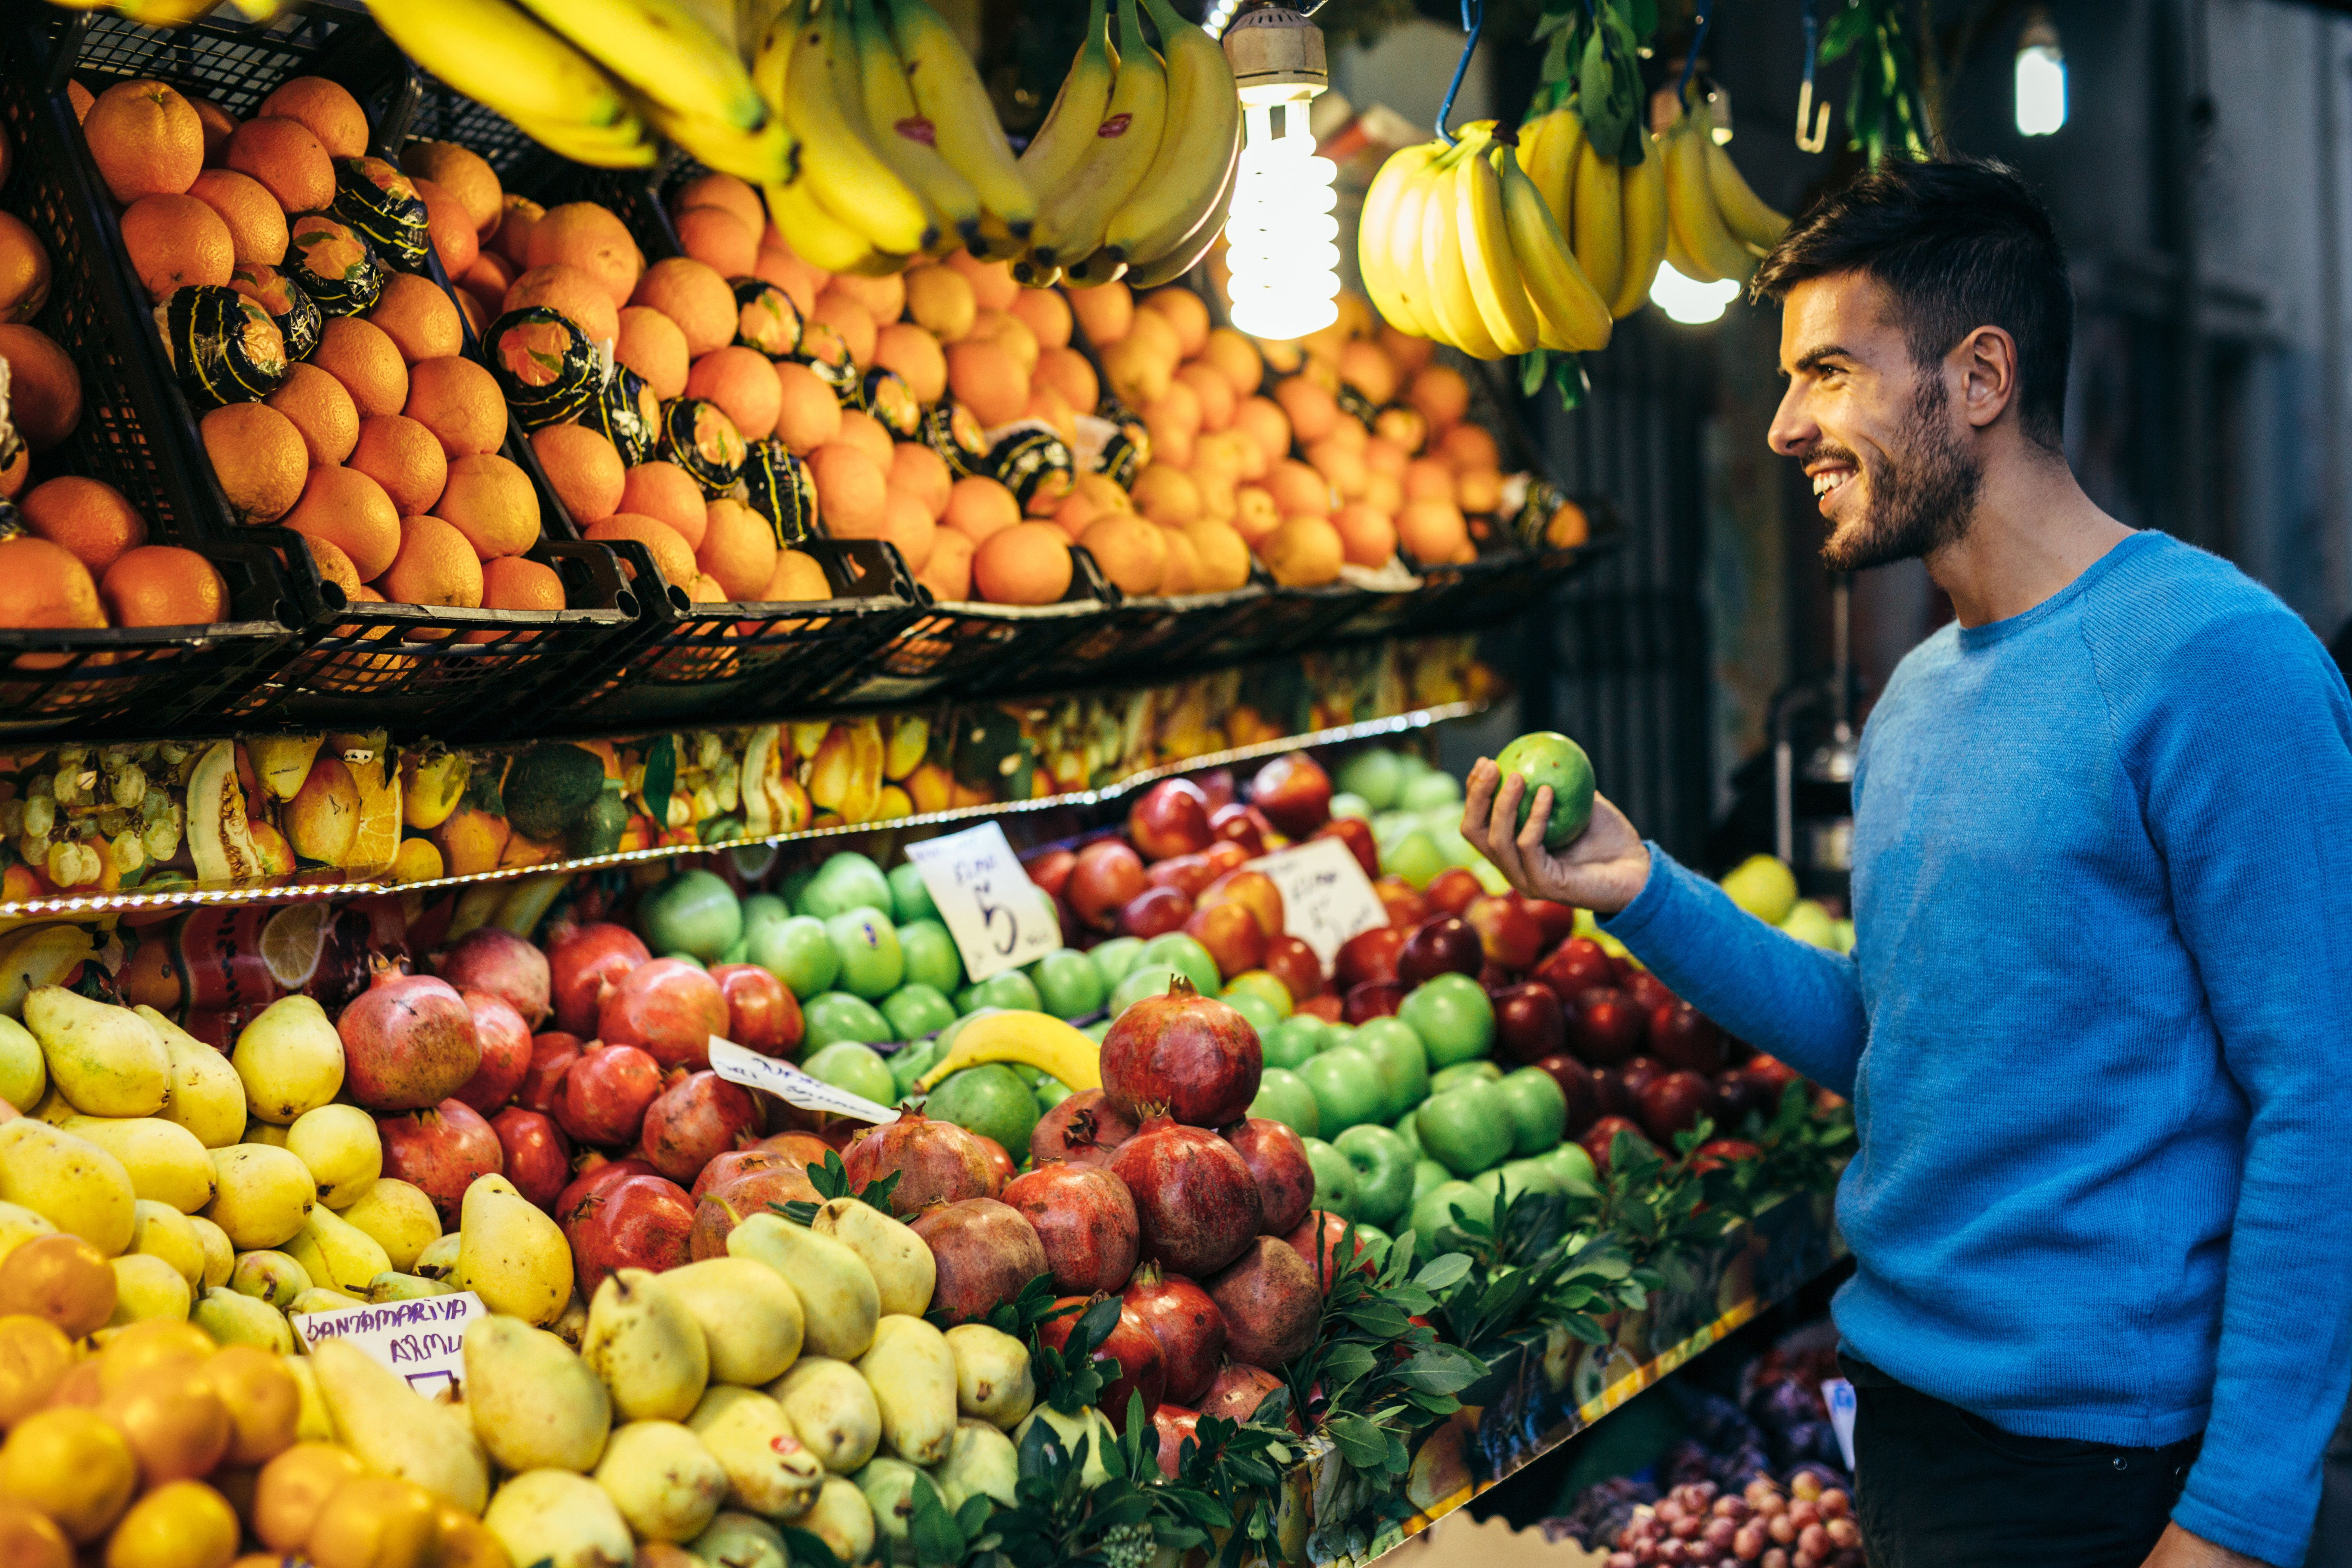 A man shopping some fruits.